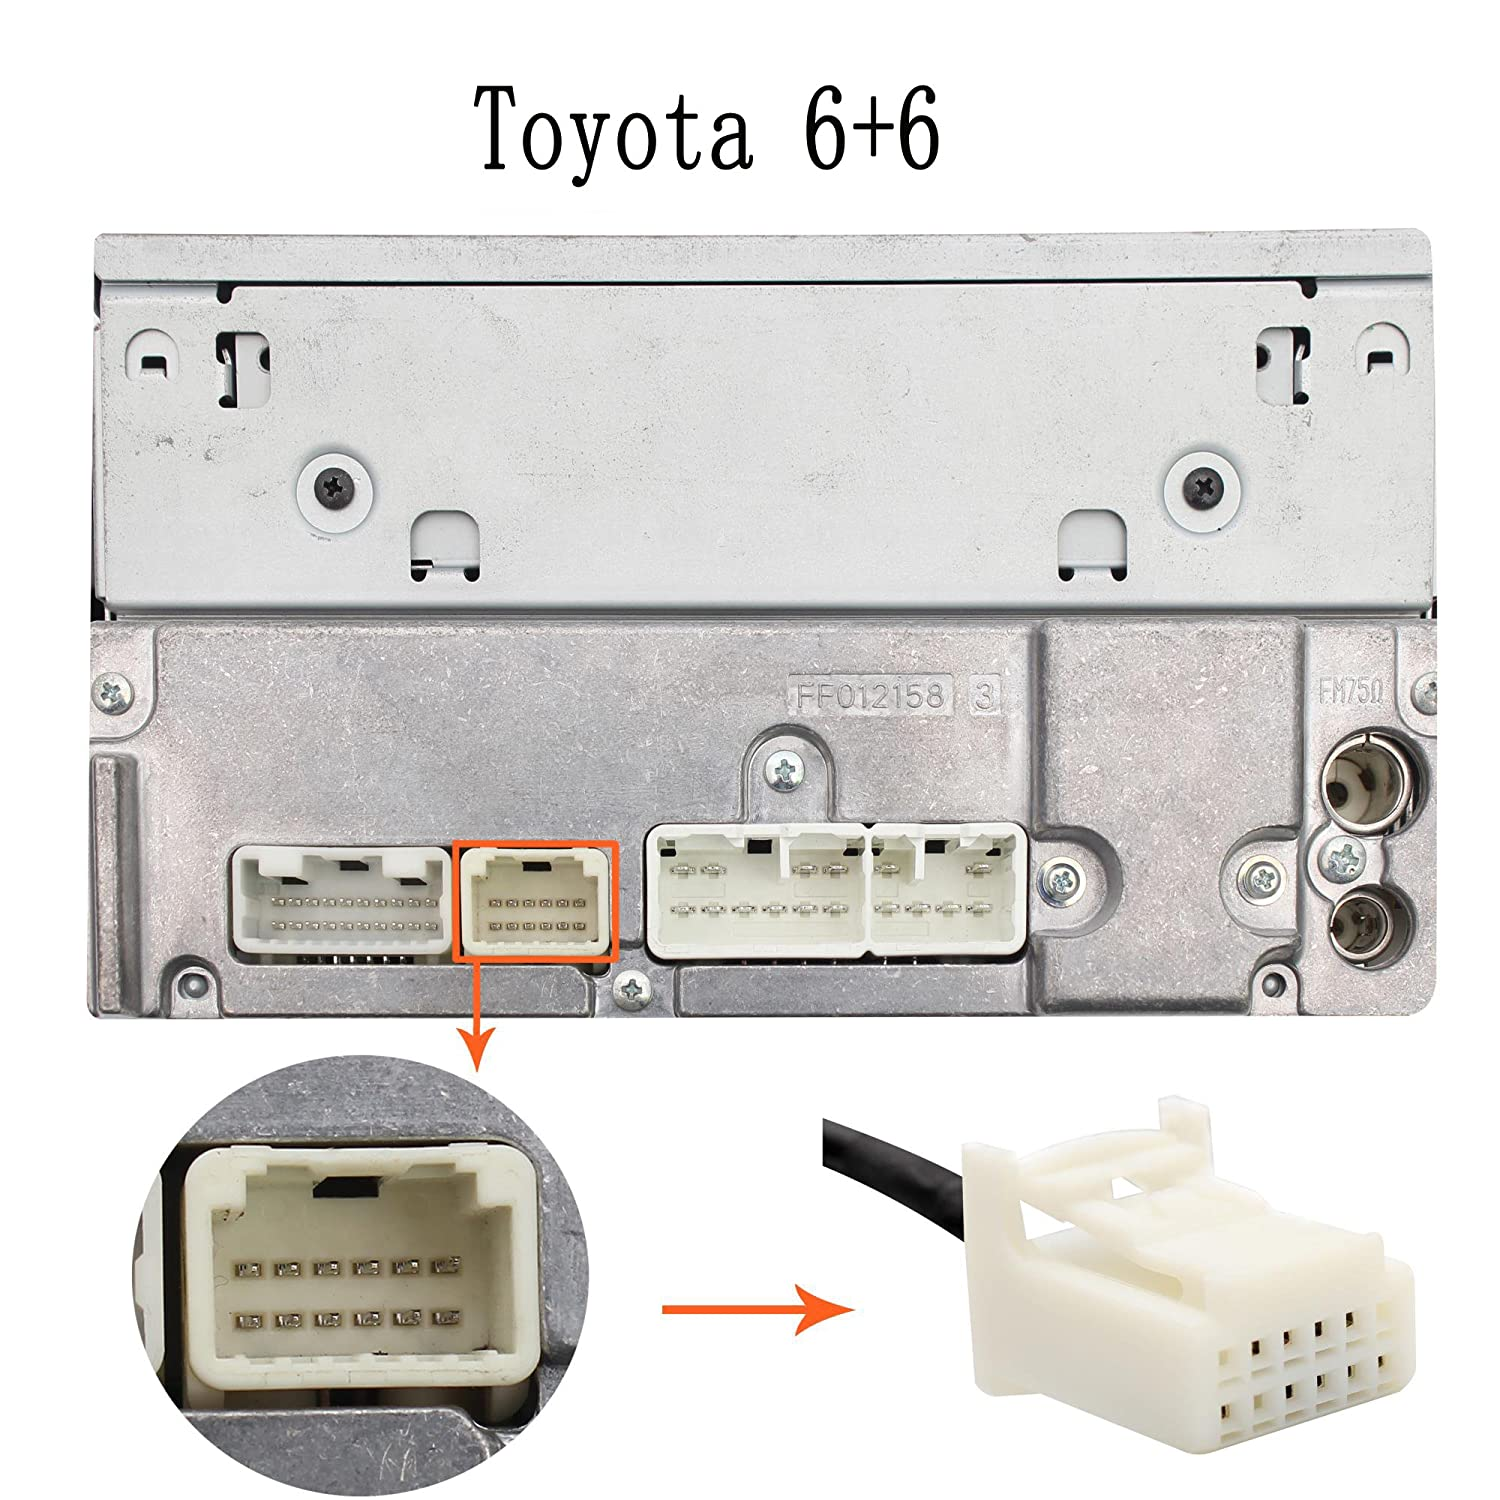 amazon com yomikoo auxillary adapter car radio 3 5mm audio input amazon com yomikoo auxillary adapter car radio 3 5mm audio input adapter aux jack interface for toyota 6 6 pin camry 2005 2011 avensis 2003 2011